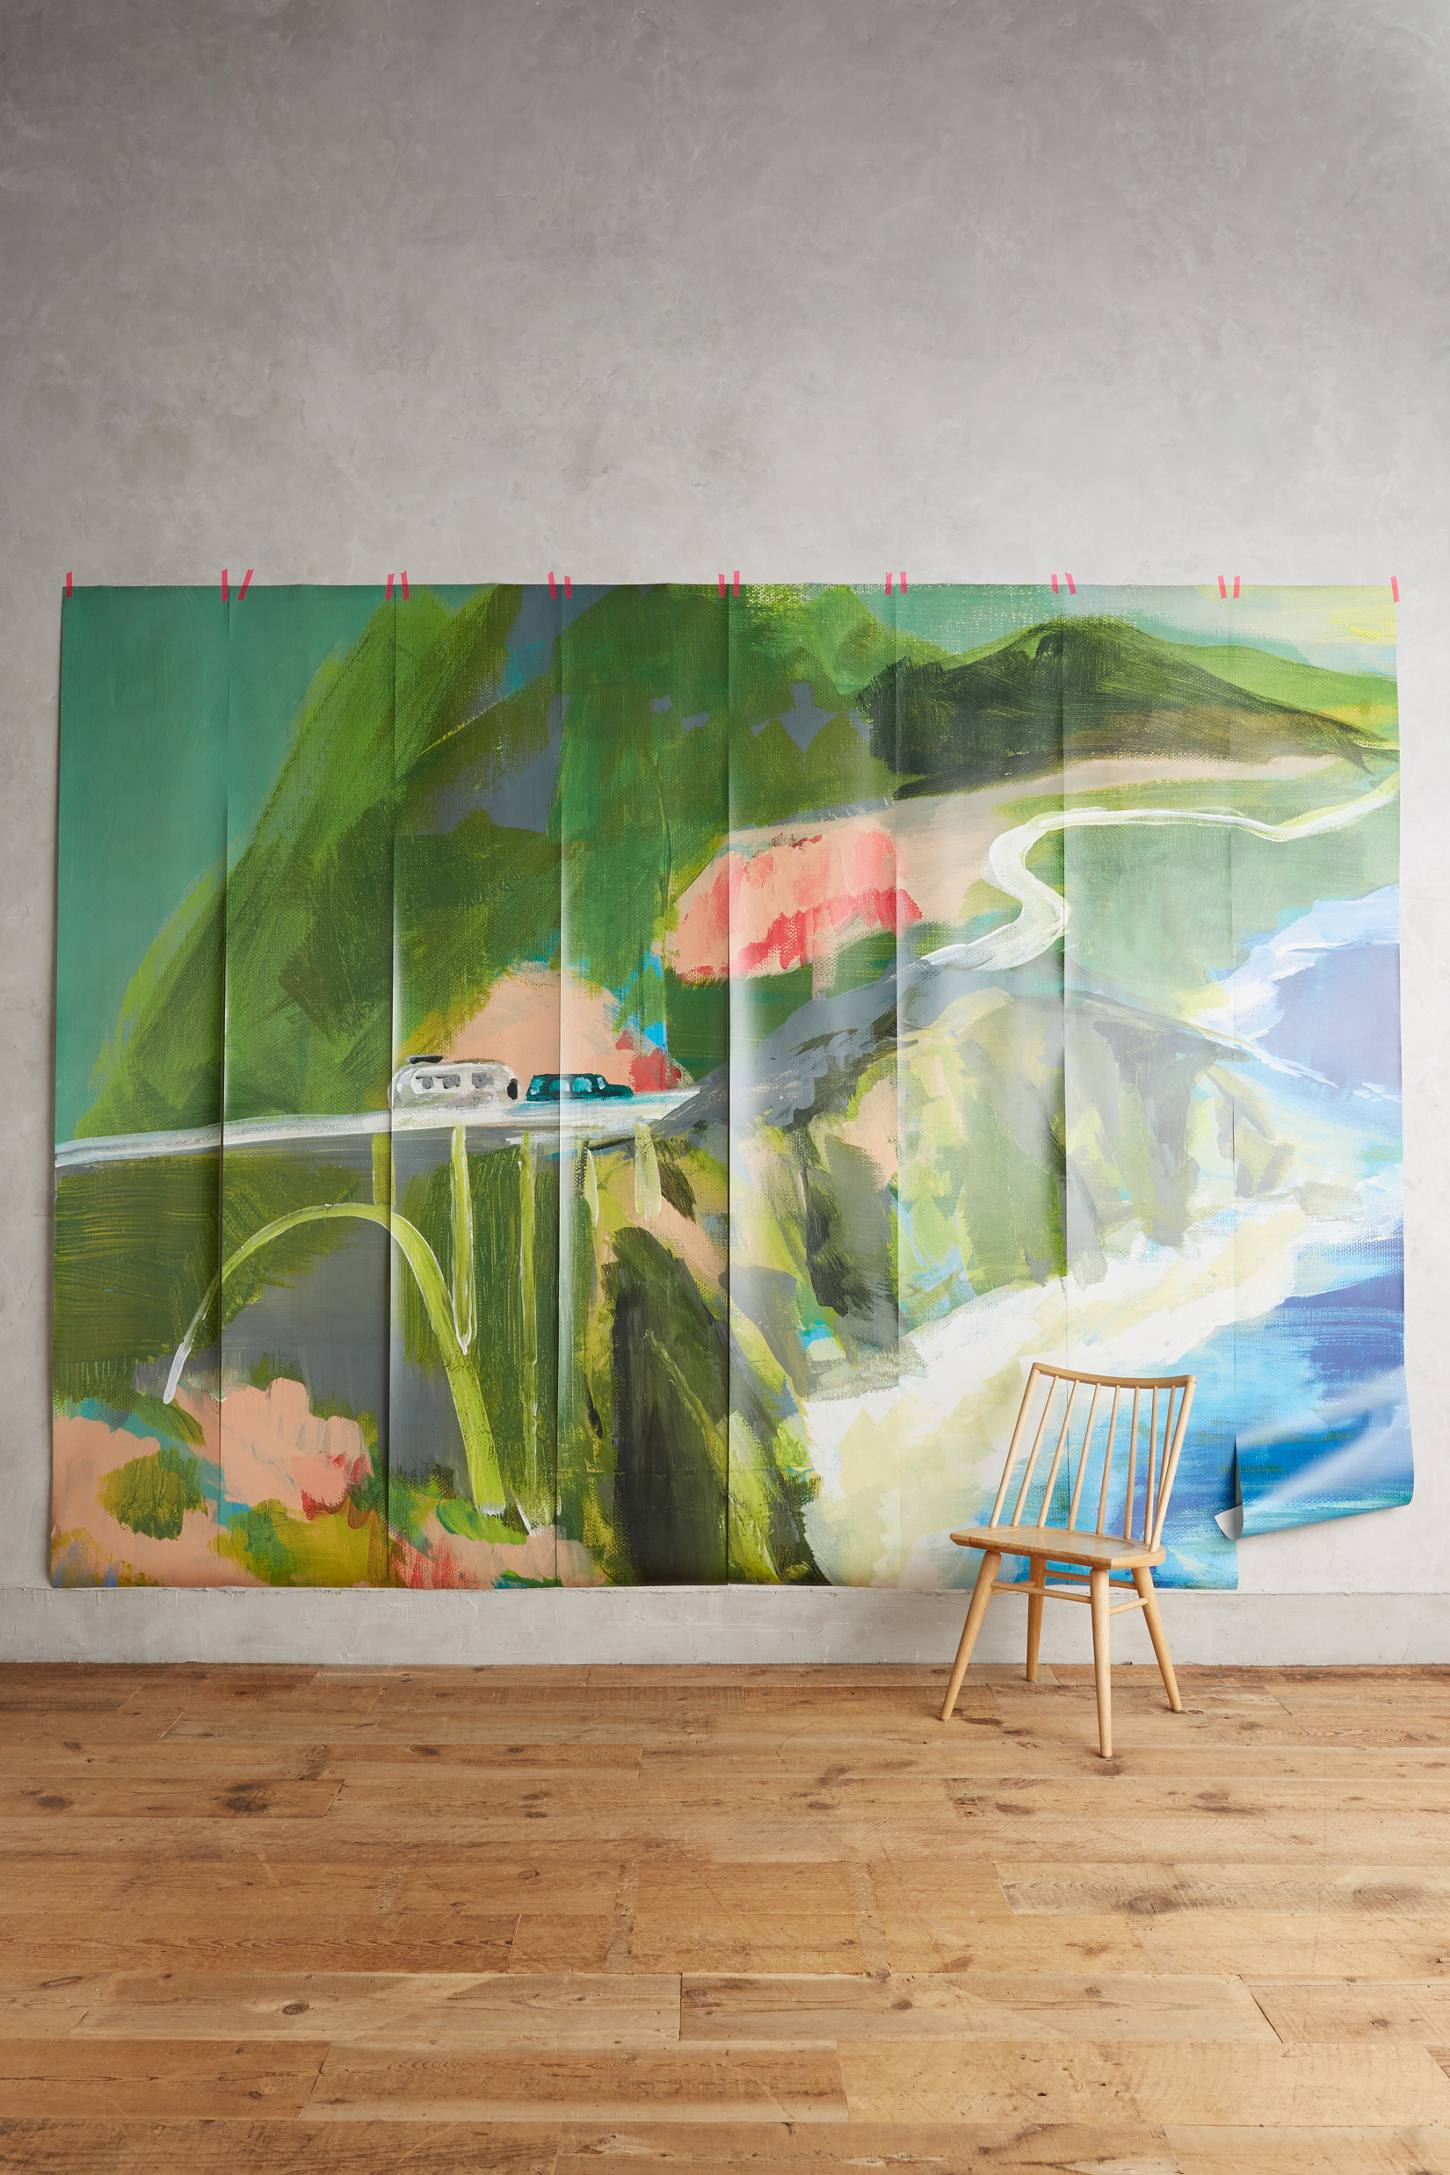 Slide View: 1: Décor mural Passing Countryside